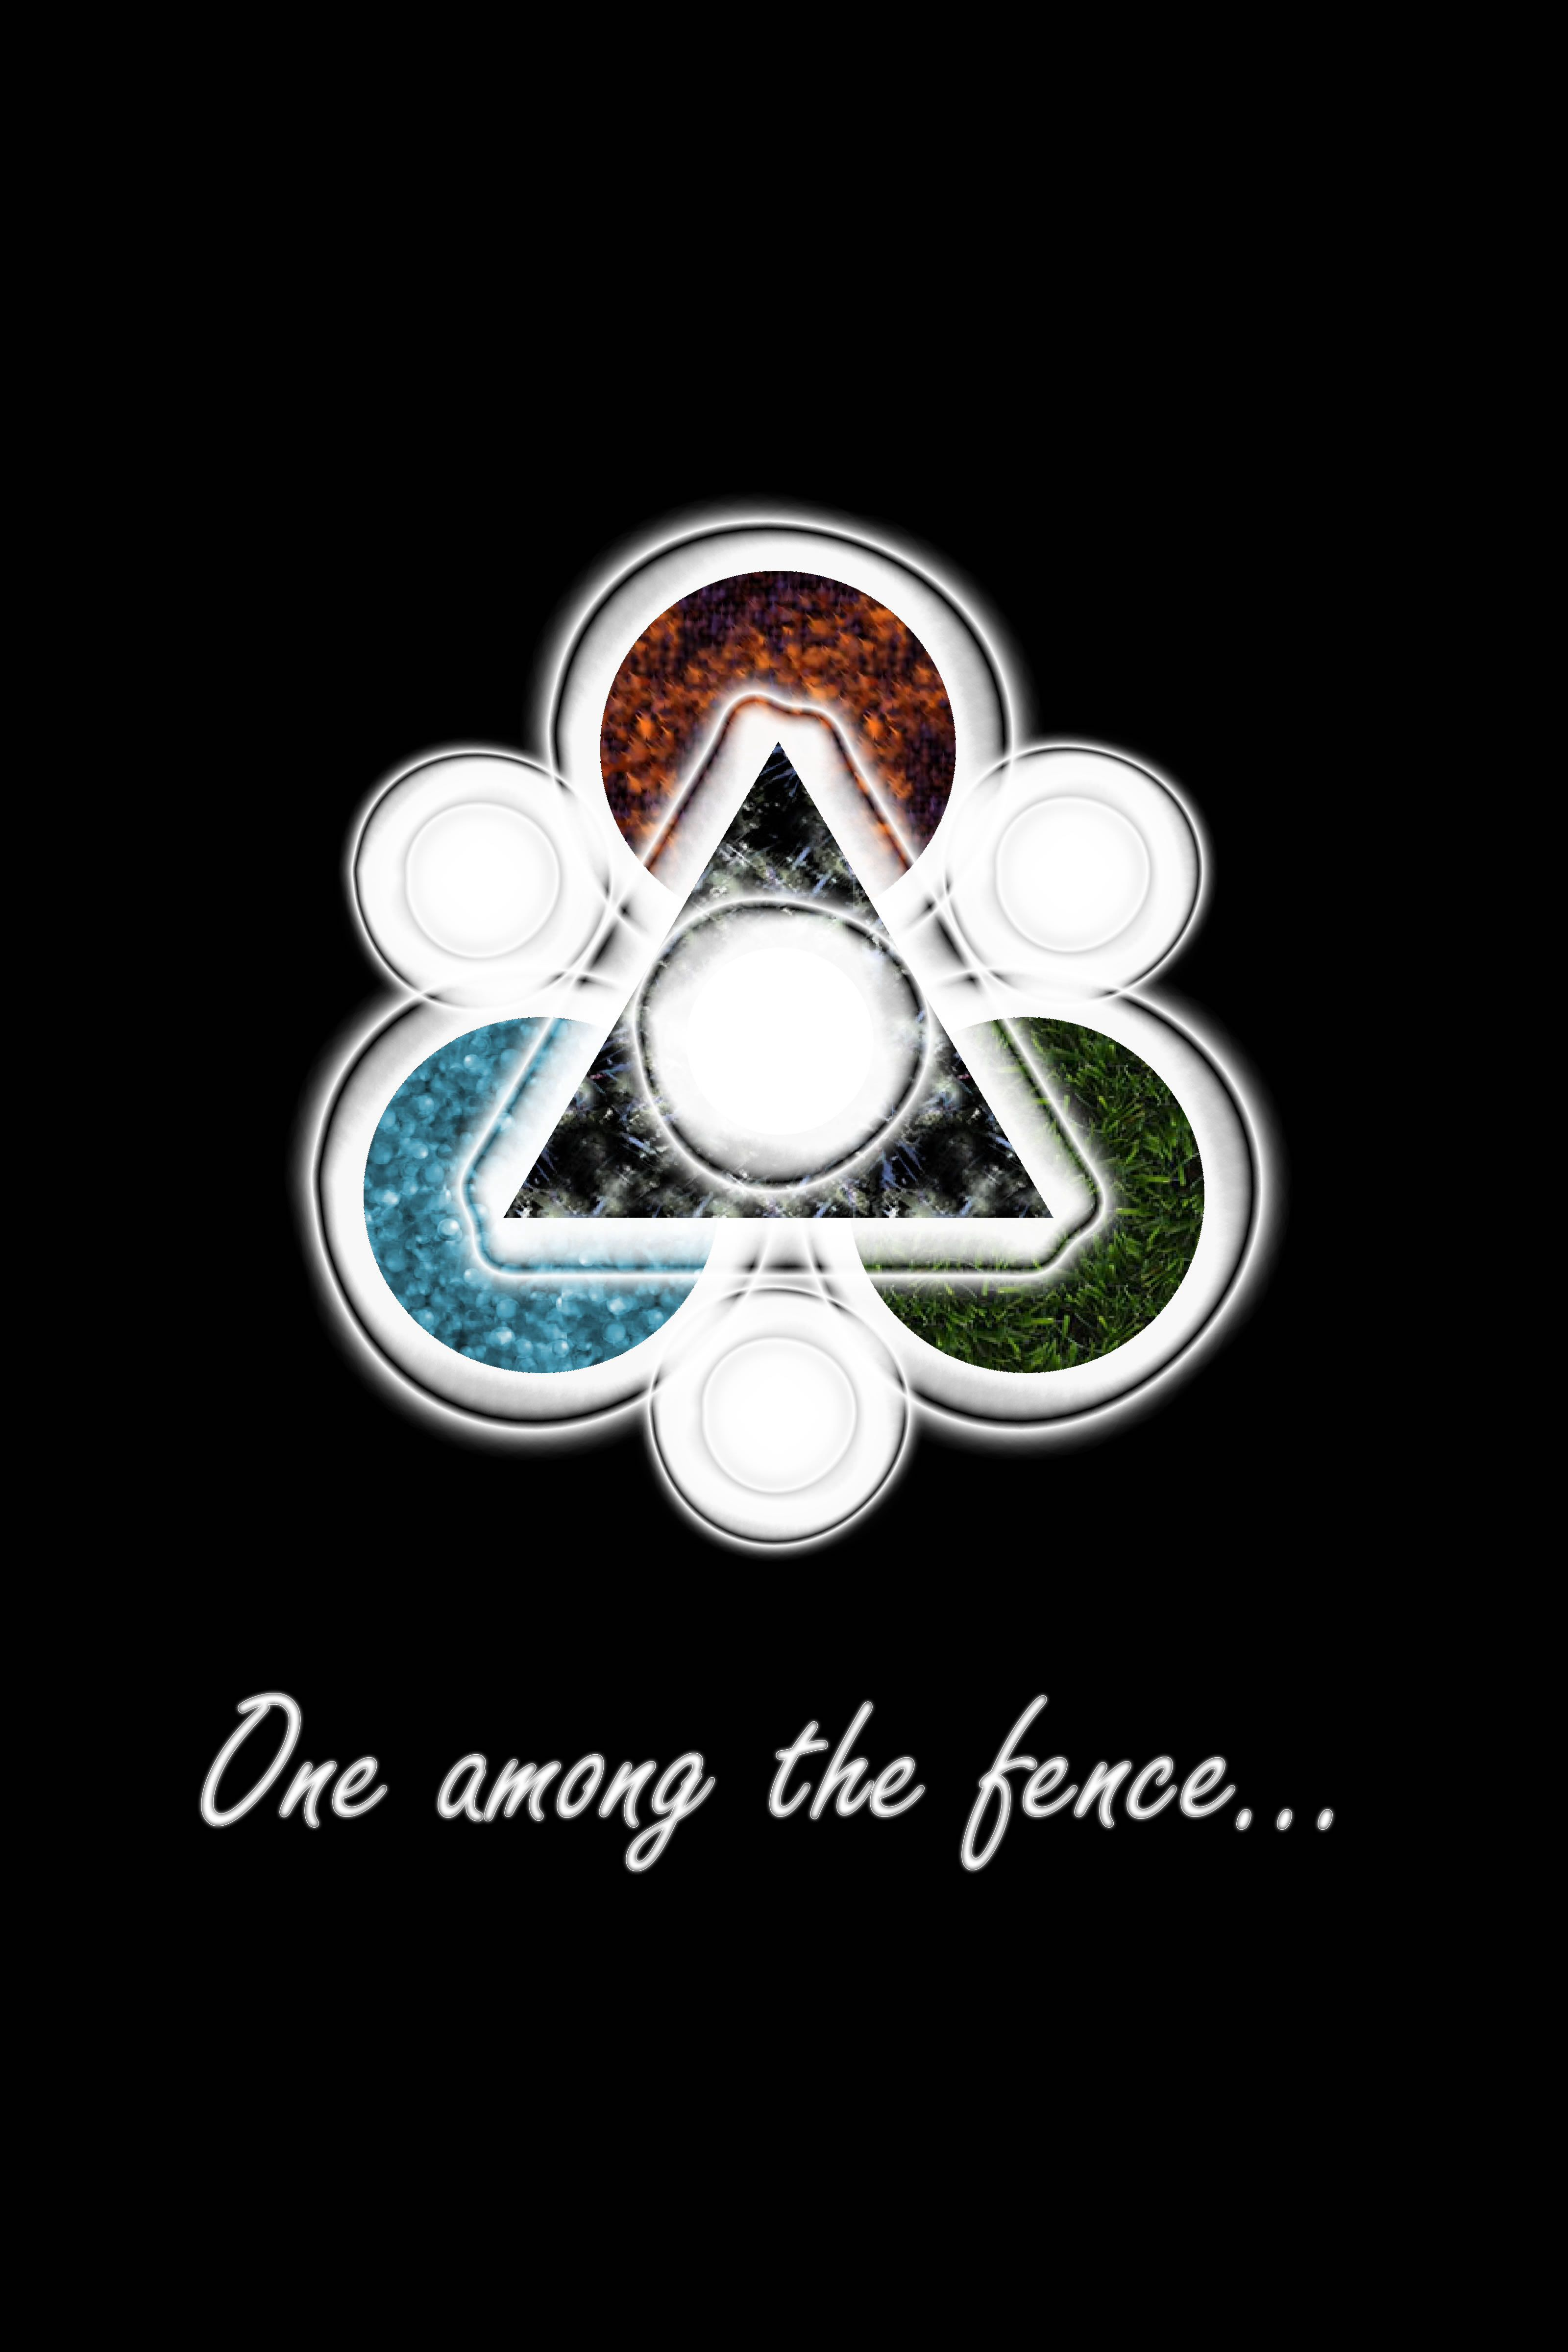 Coheed And Cambria Iphone Wallpaper One Among The Fence Coheed